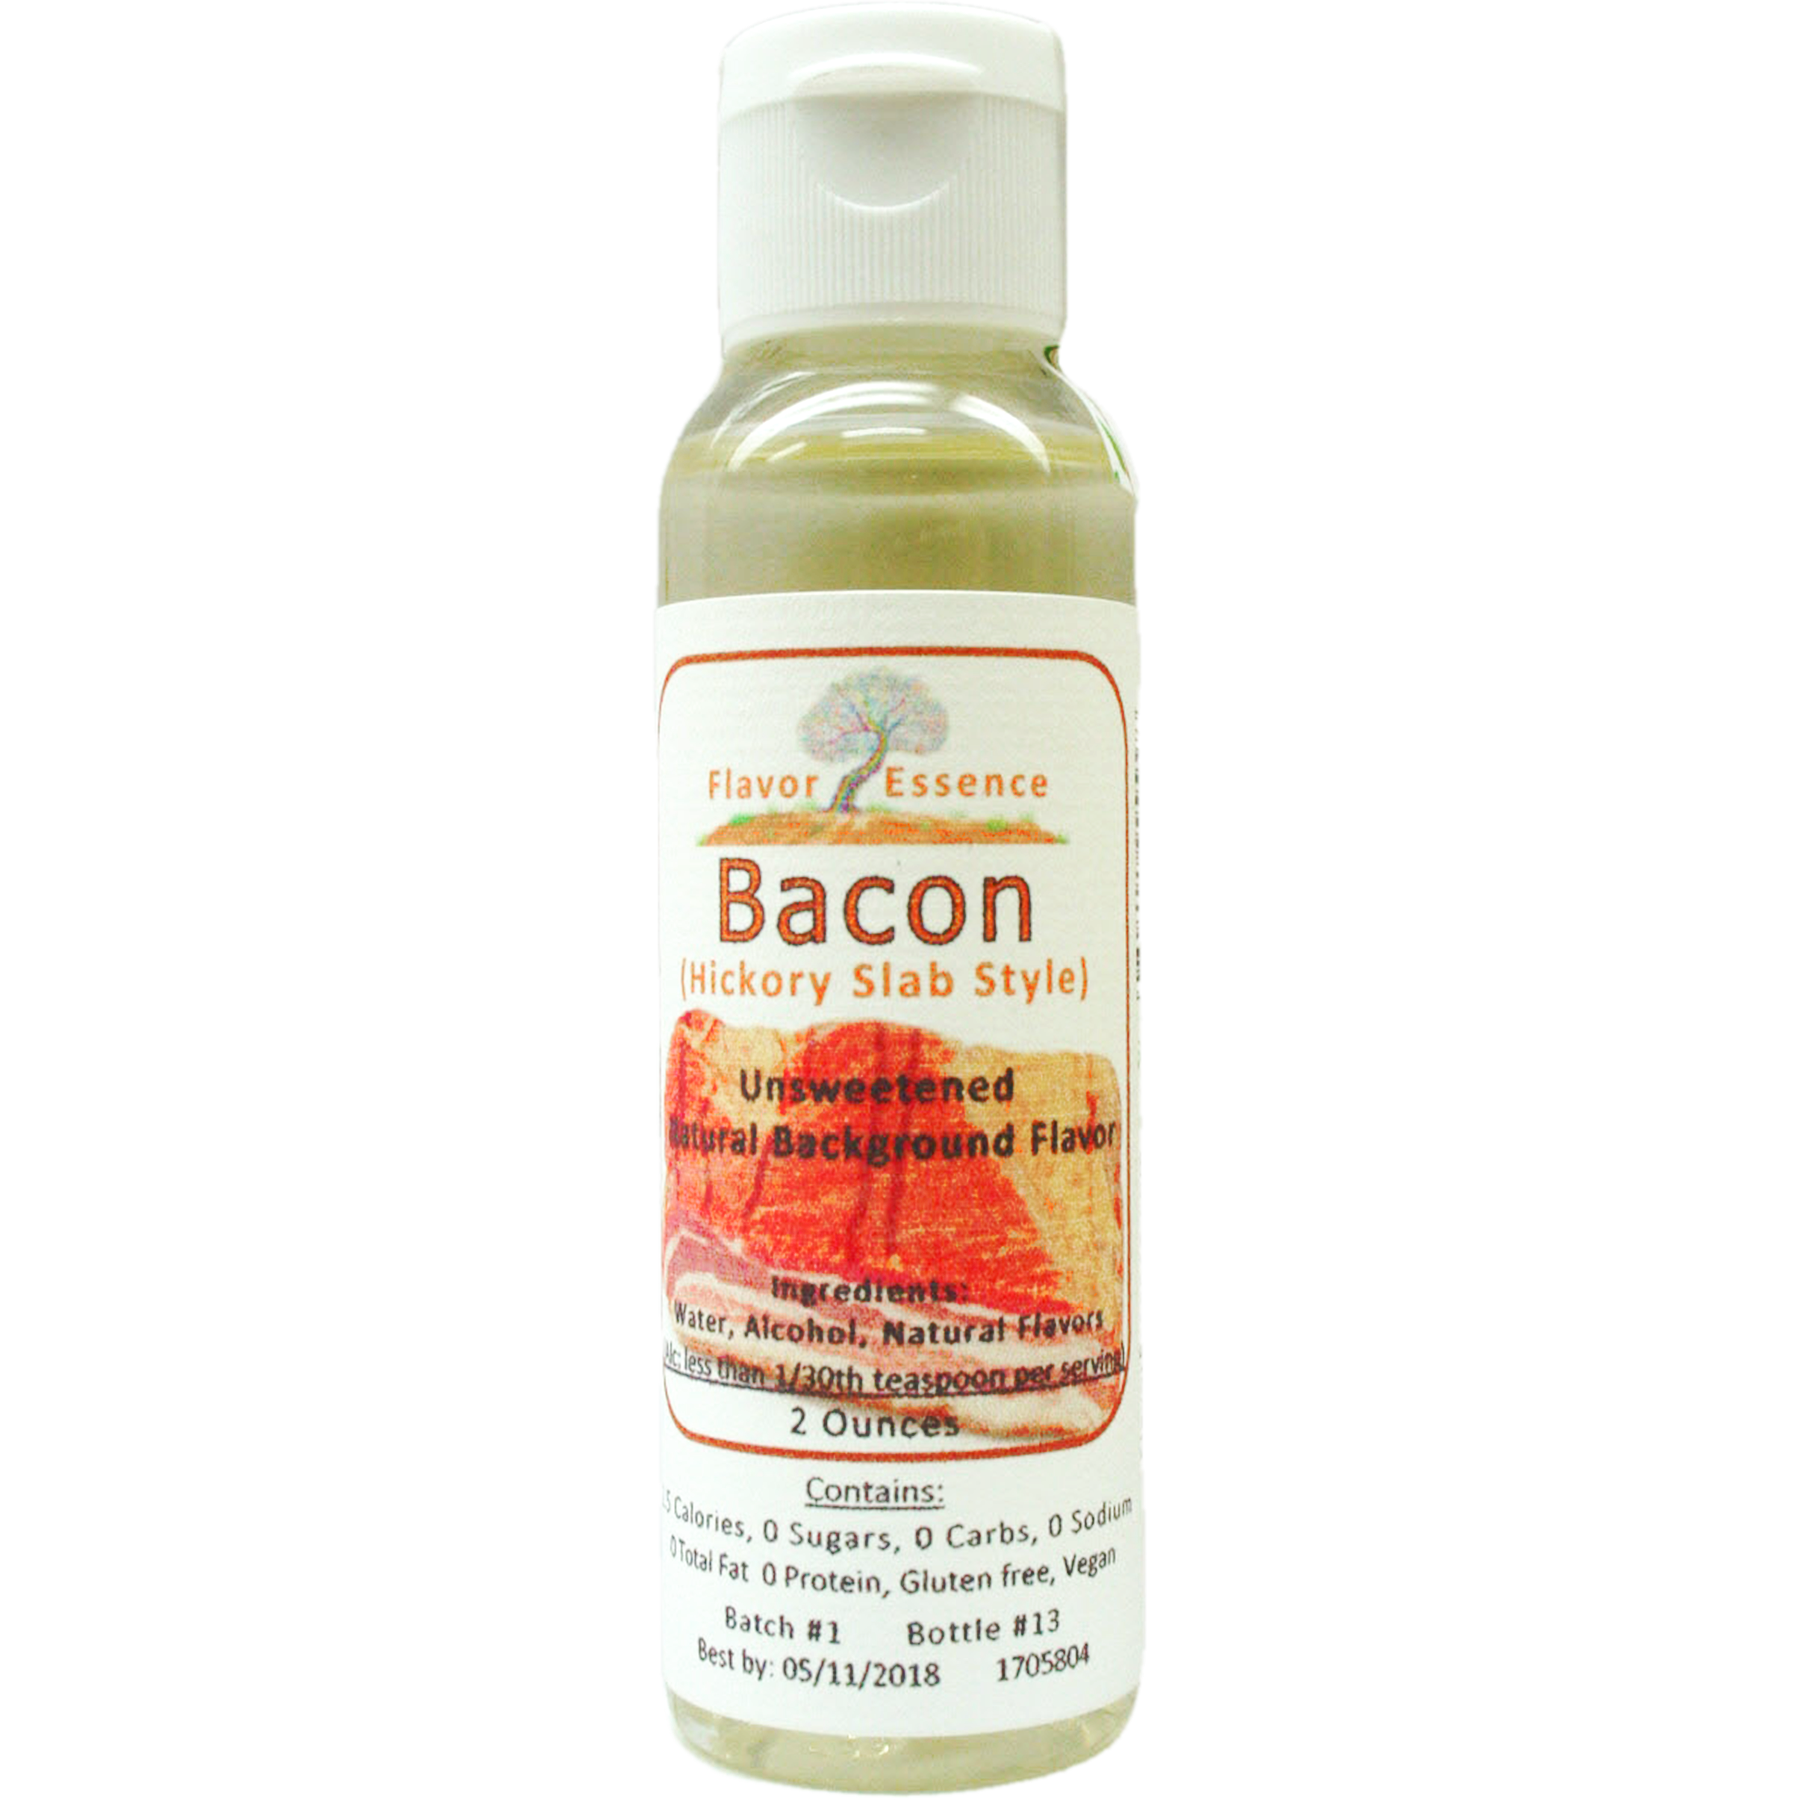 BACON -(Hickory Slab Style) NATURAL FLAVORING BACON